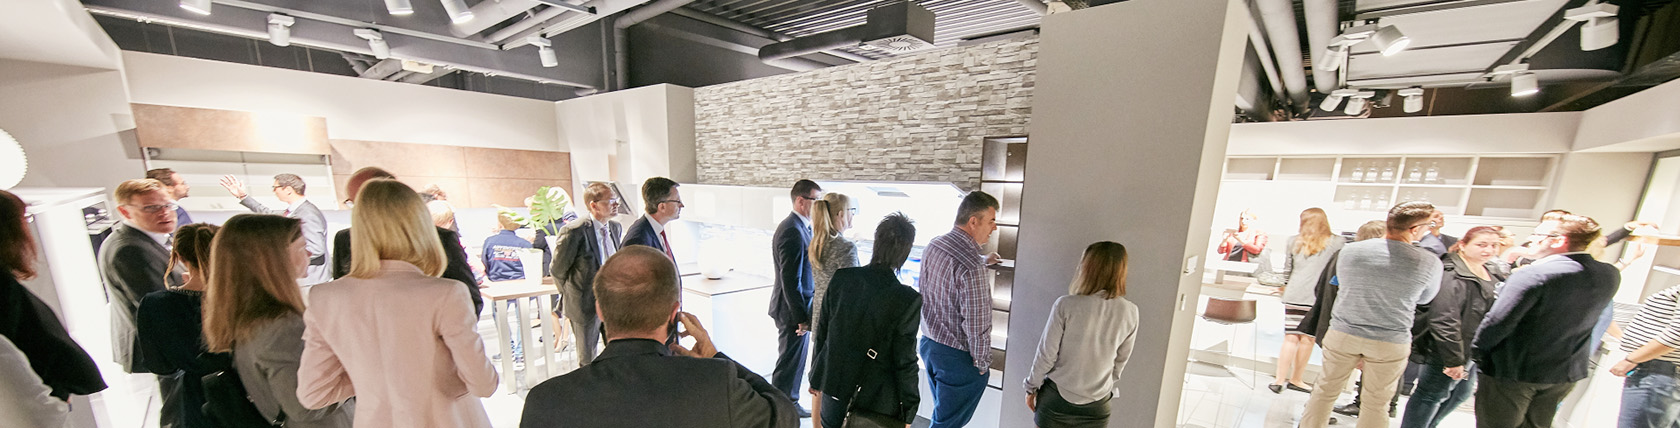 Visitors admire the kitchens at the nobilia in-house exhibition